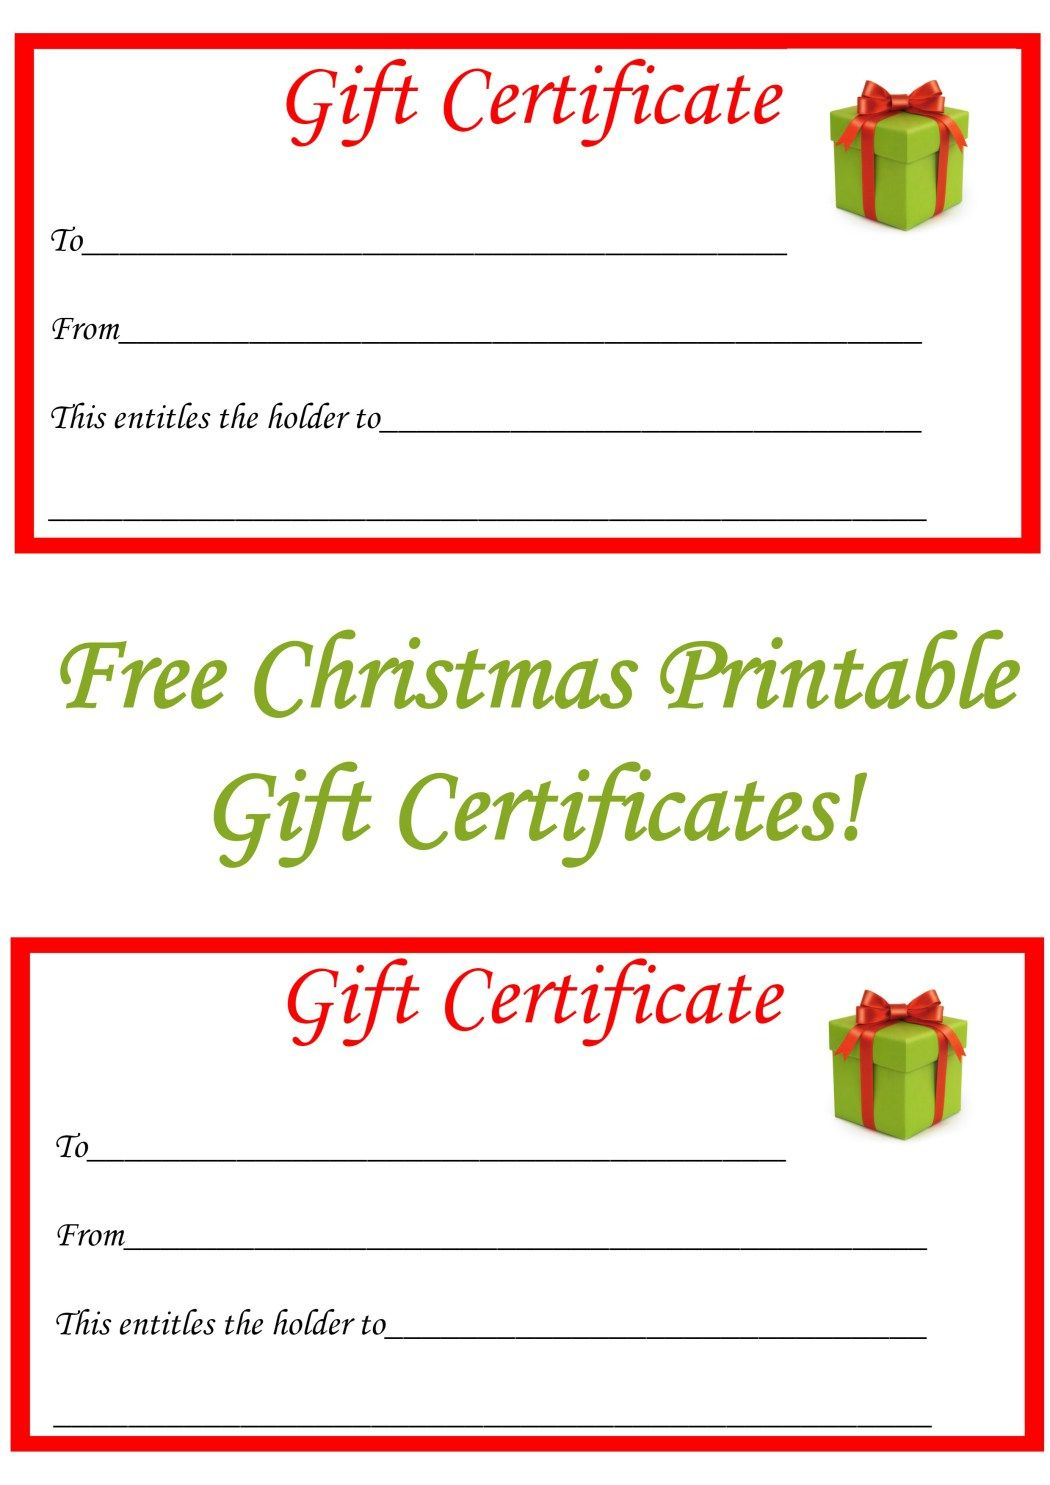 photo regarding Free Printable Christmas Gift Certificates known as Totally free Xmas Printable Reward Certificates Present Options